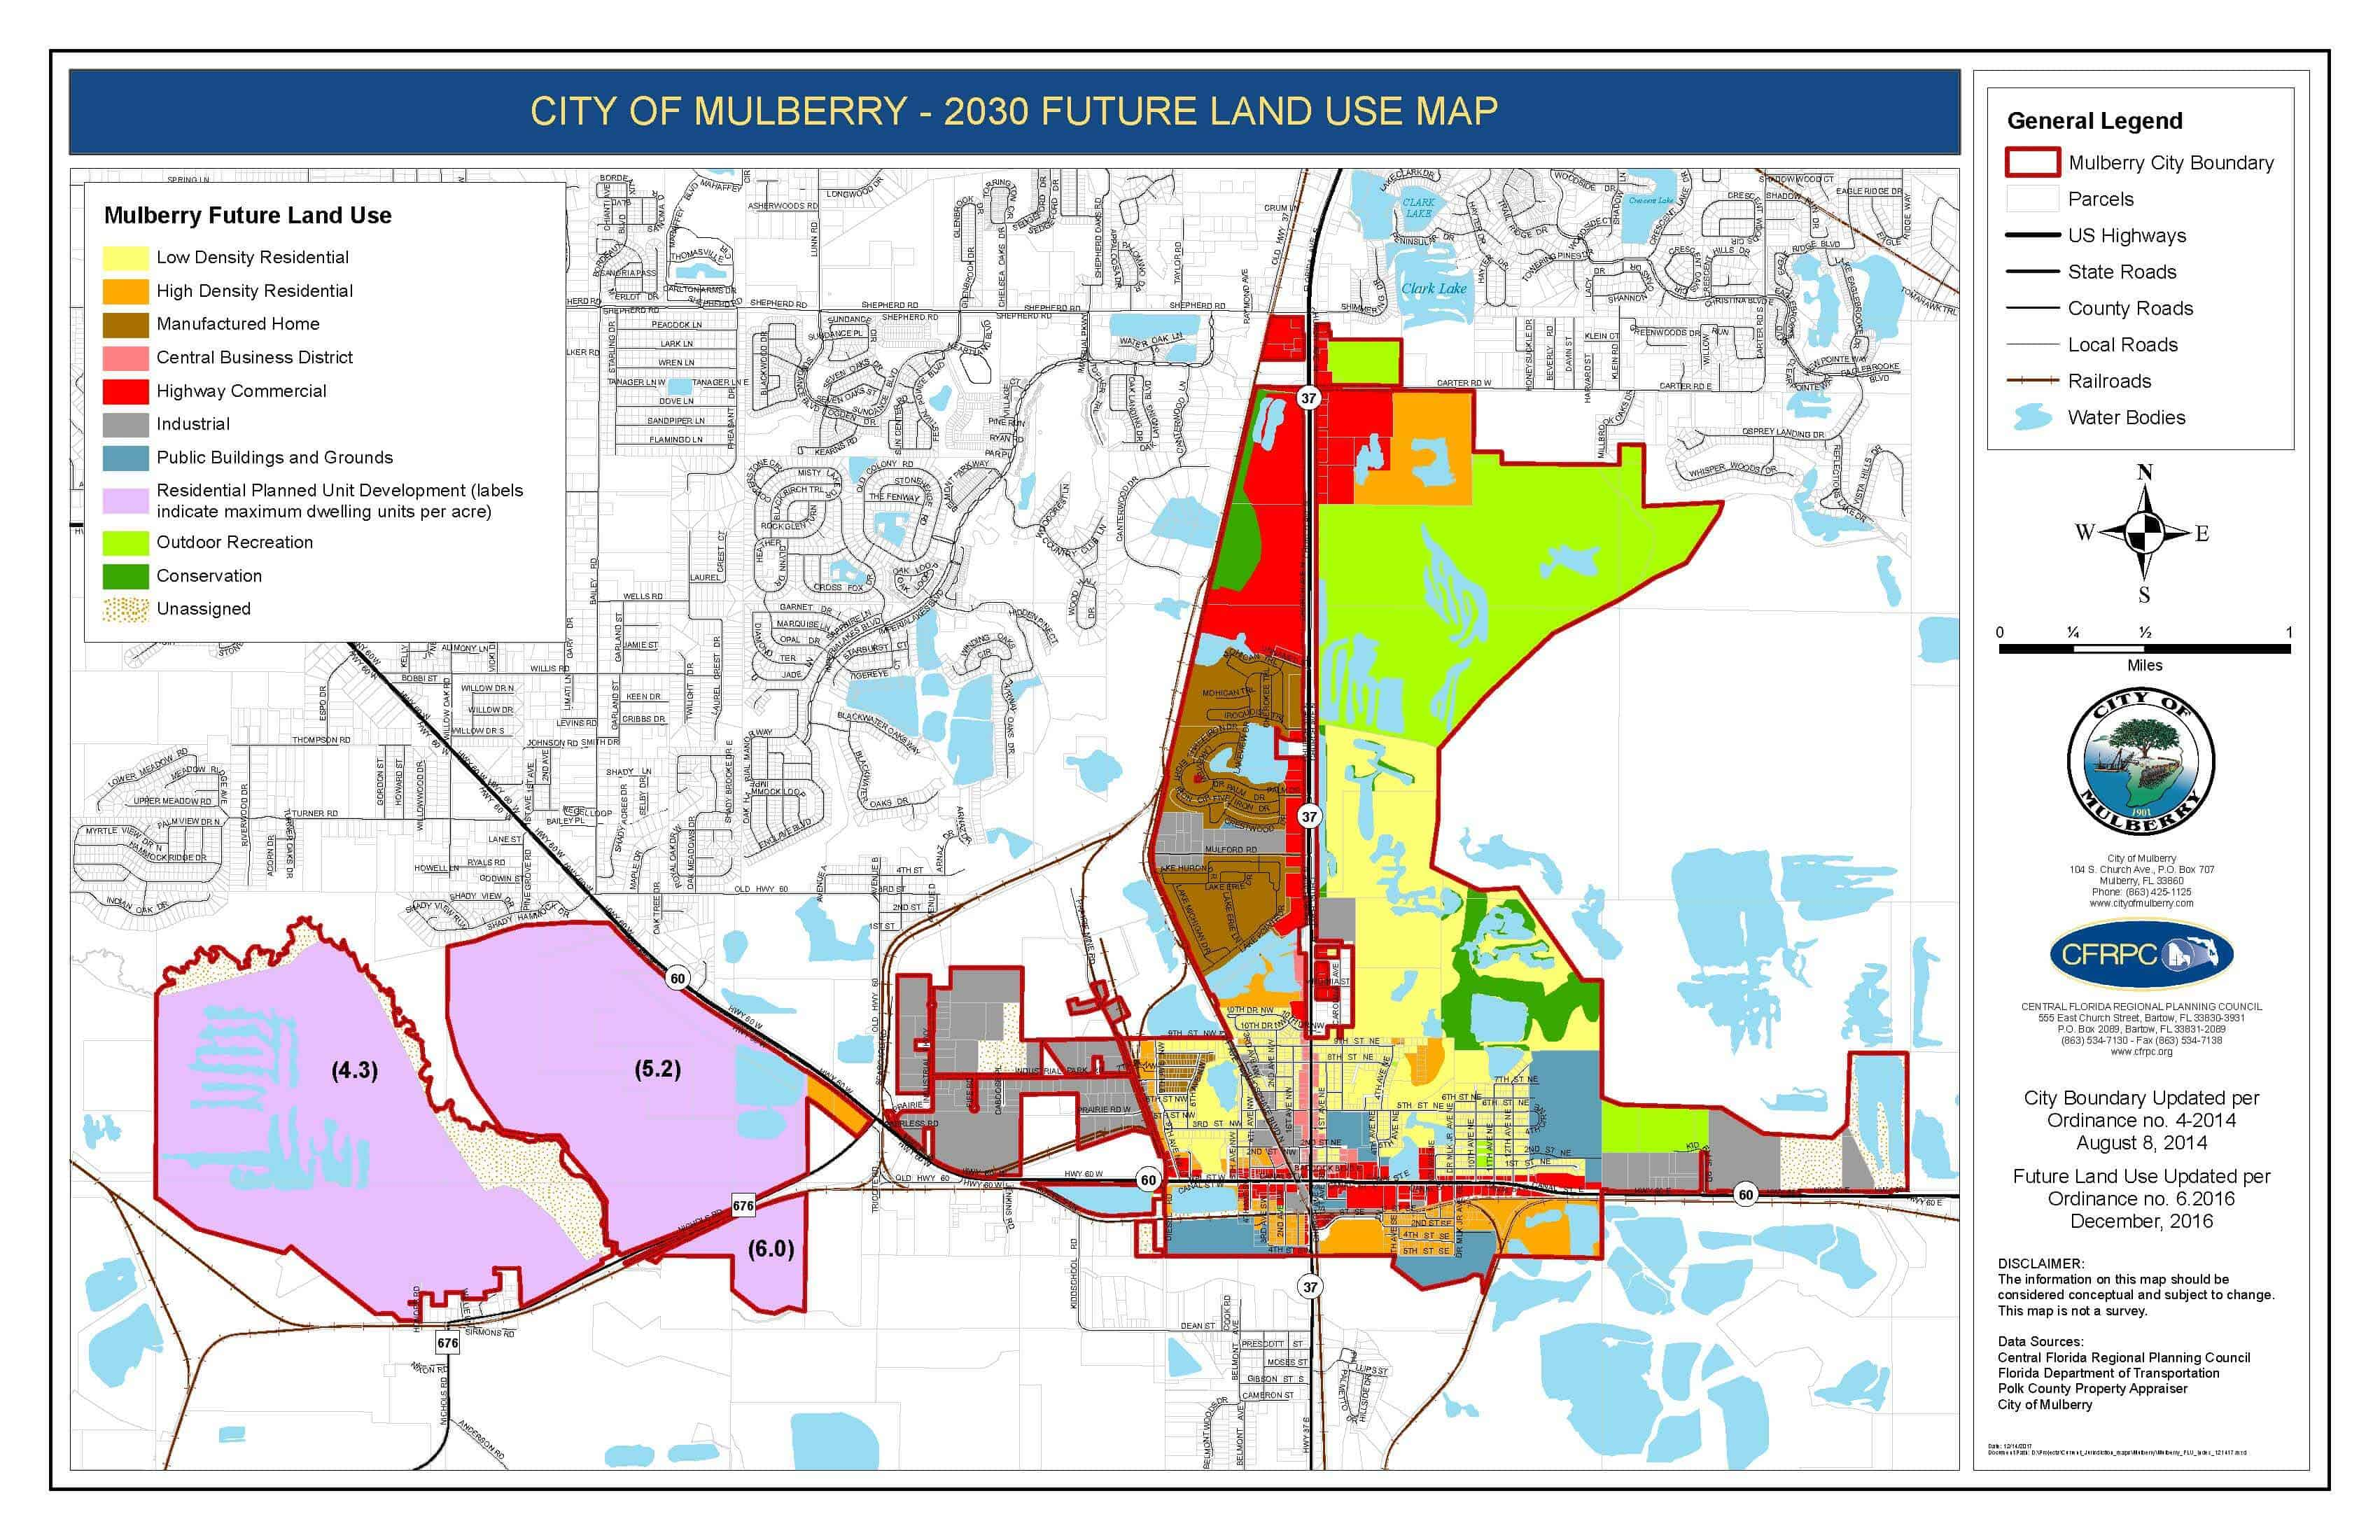 Mulberry Future Land Use Map